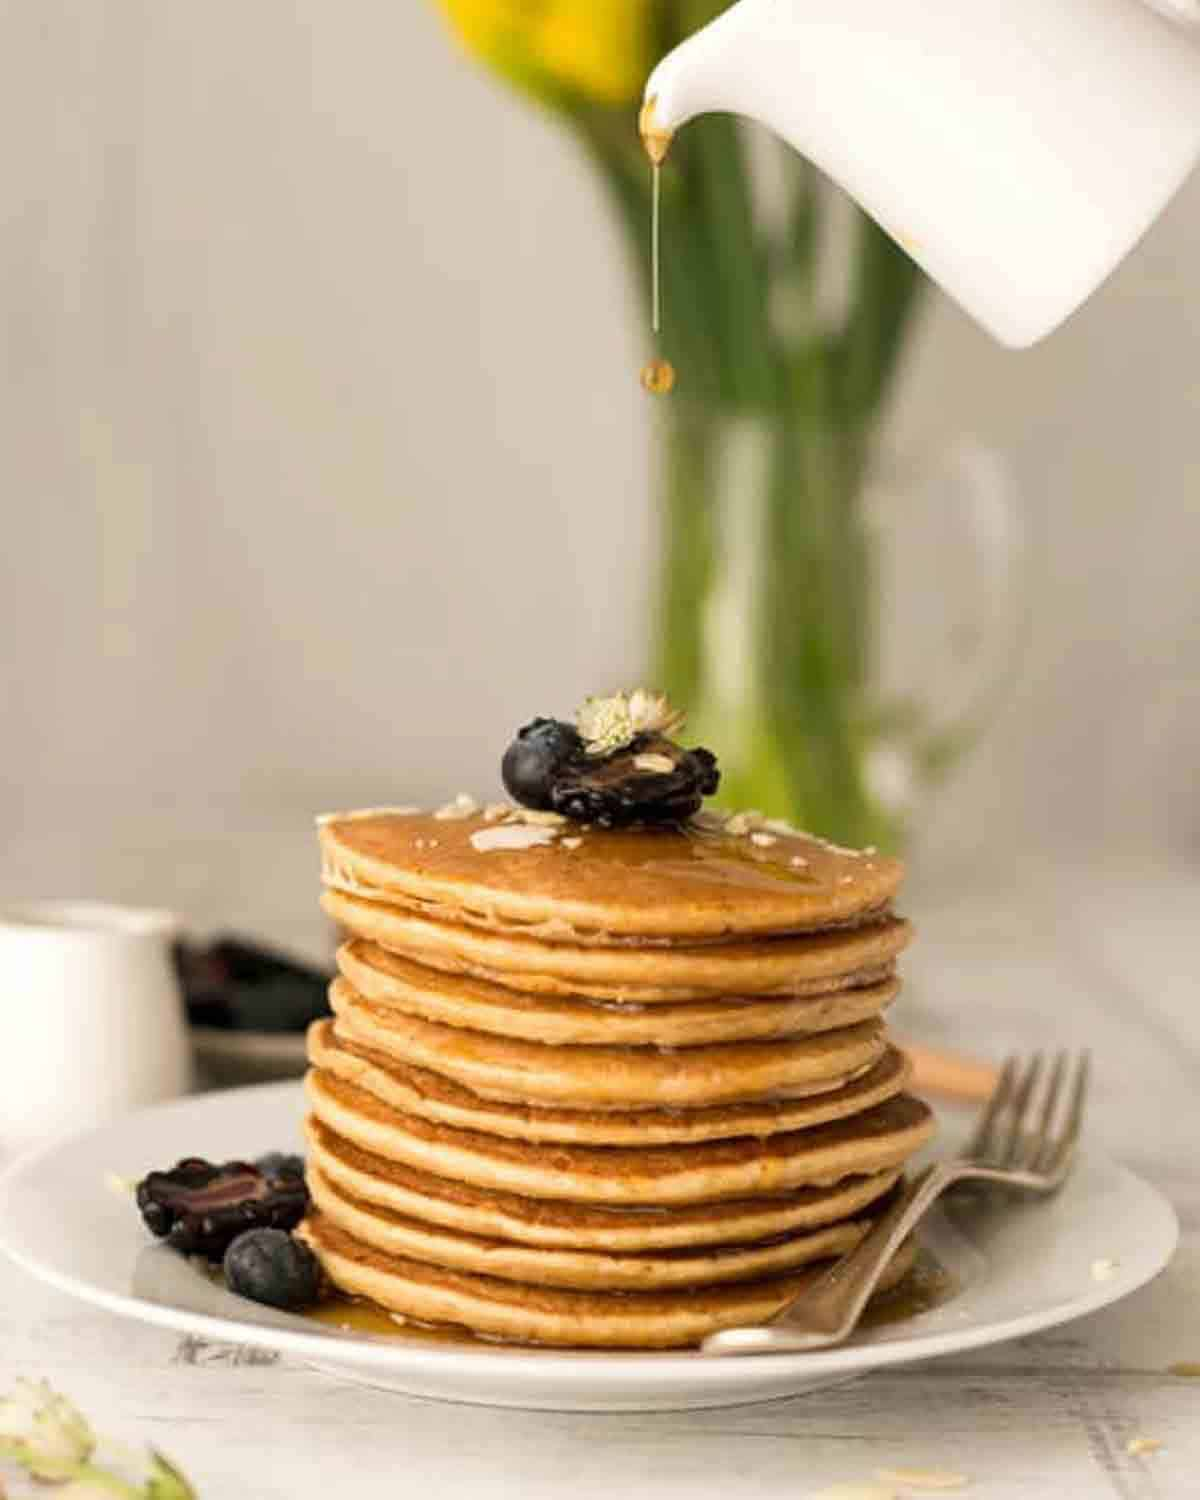 Pouring maple syrup over a stack of pancakes topped with blueberries with a fork.